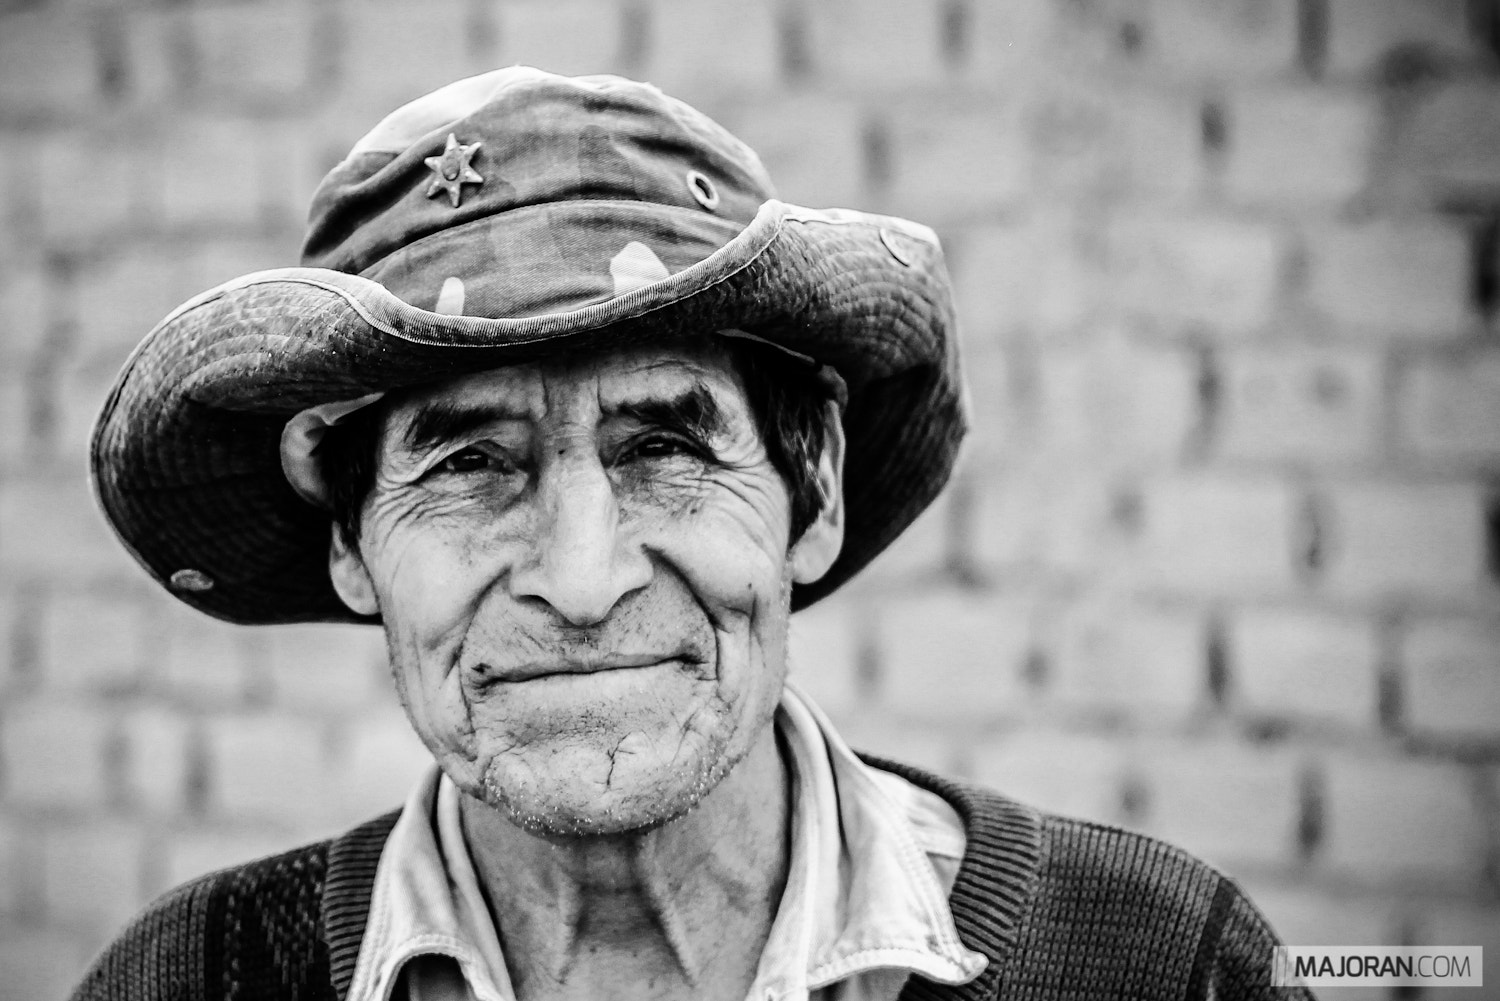 Photograph Welcome to Peru by Ray Majoran on 500px